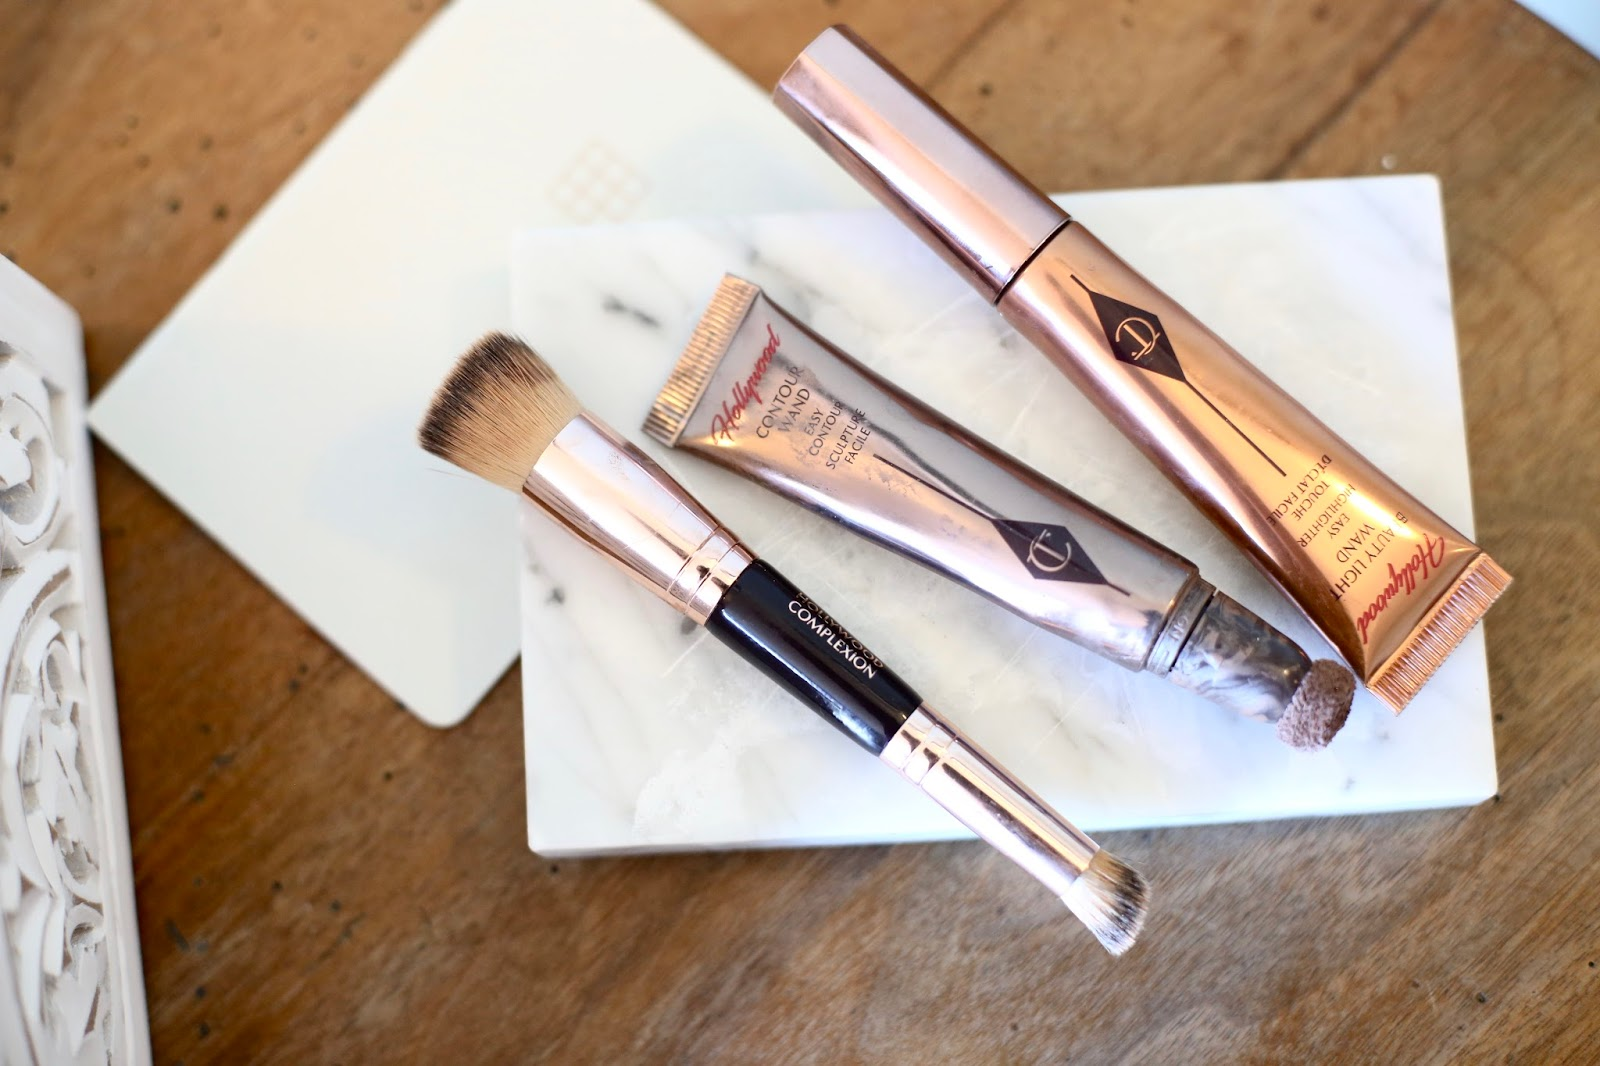 Charlotte tilbury highlight and contour